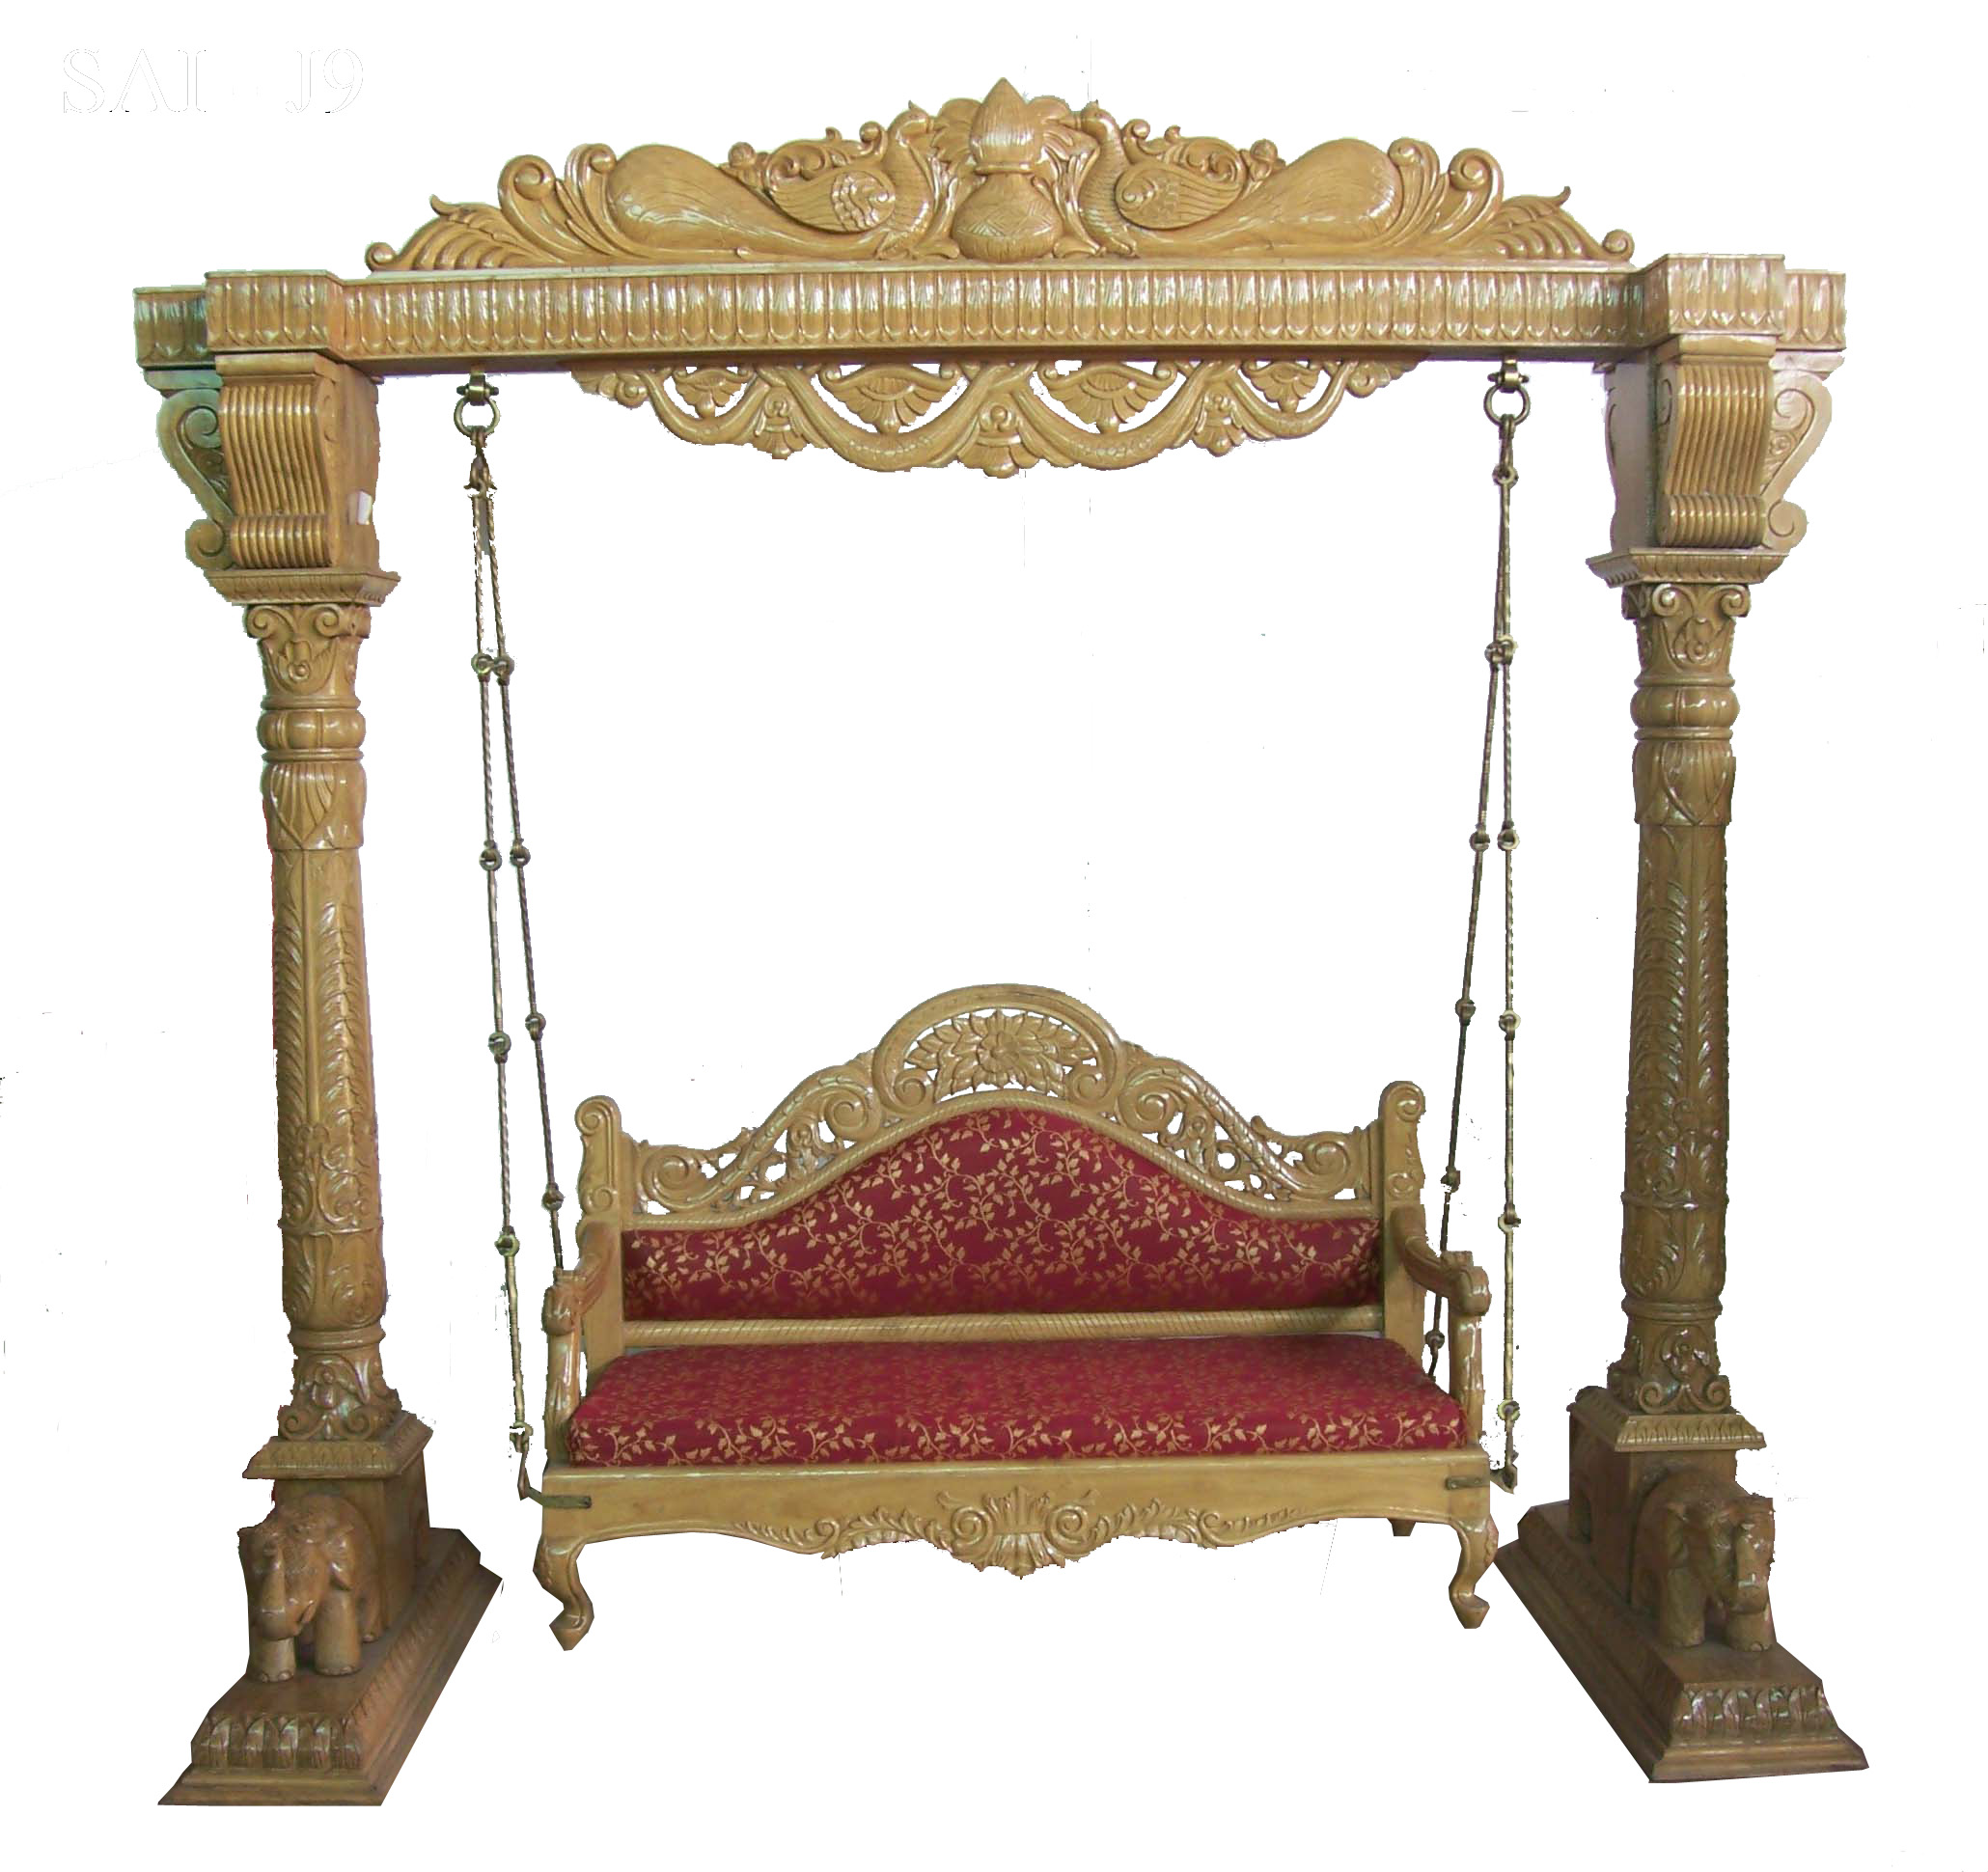 Buy Royal Indian Swing From Dave 39 S Export House Rajkot India Id 221705